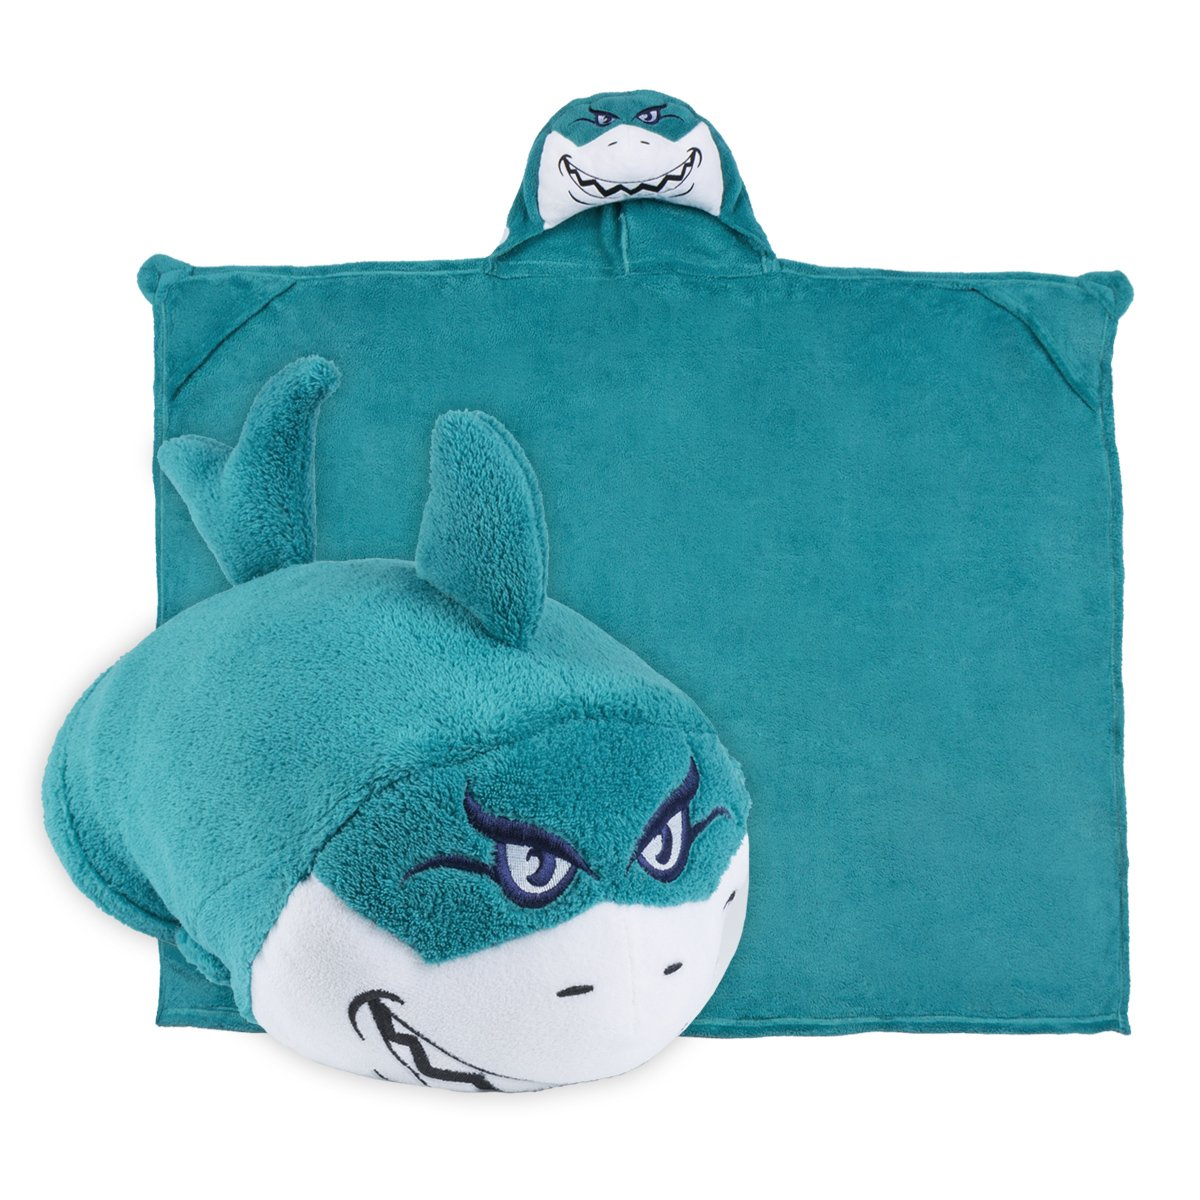 Comfy Critters Stuffed Animal Blanket - Shark - Kids Huggable Pillow and Blanket Perfect for Pretend Play, Travel, nap time. by Comfy Critters